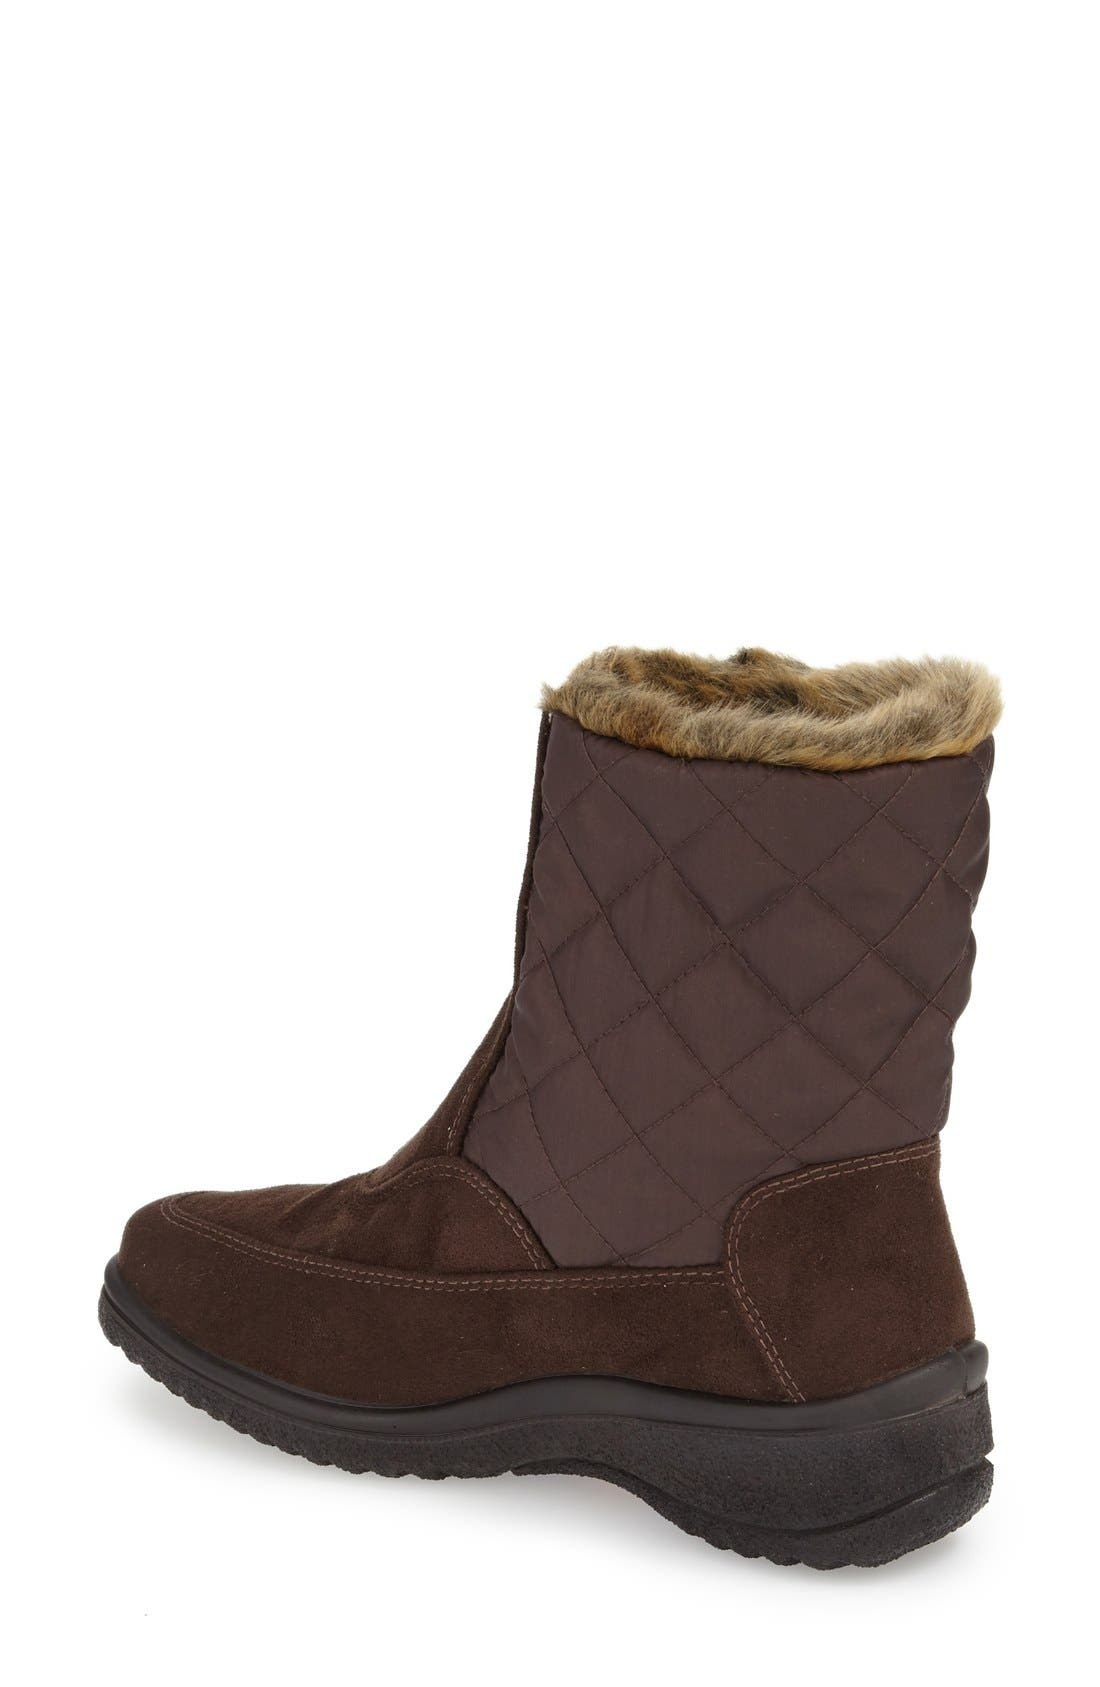 Alternate Image 2  - ara 'Maeko' Waterproof Gore-Tex® Bootie (Women)